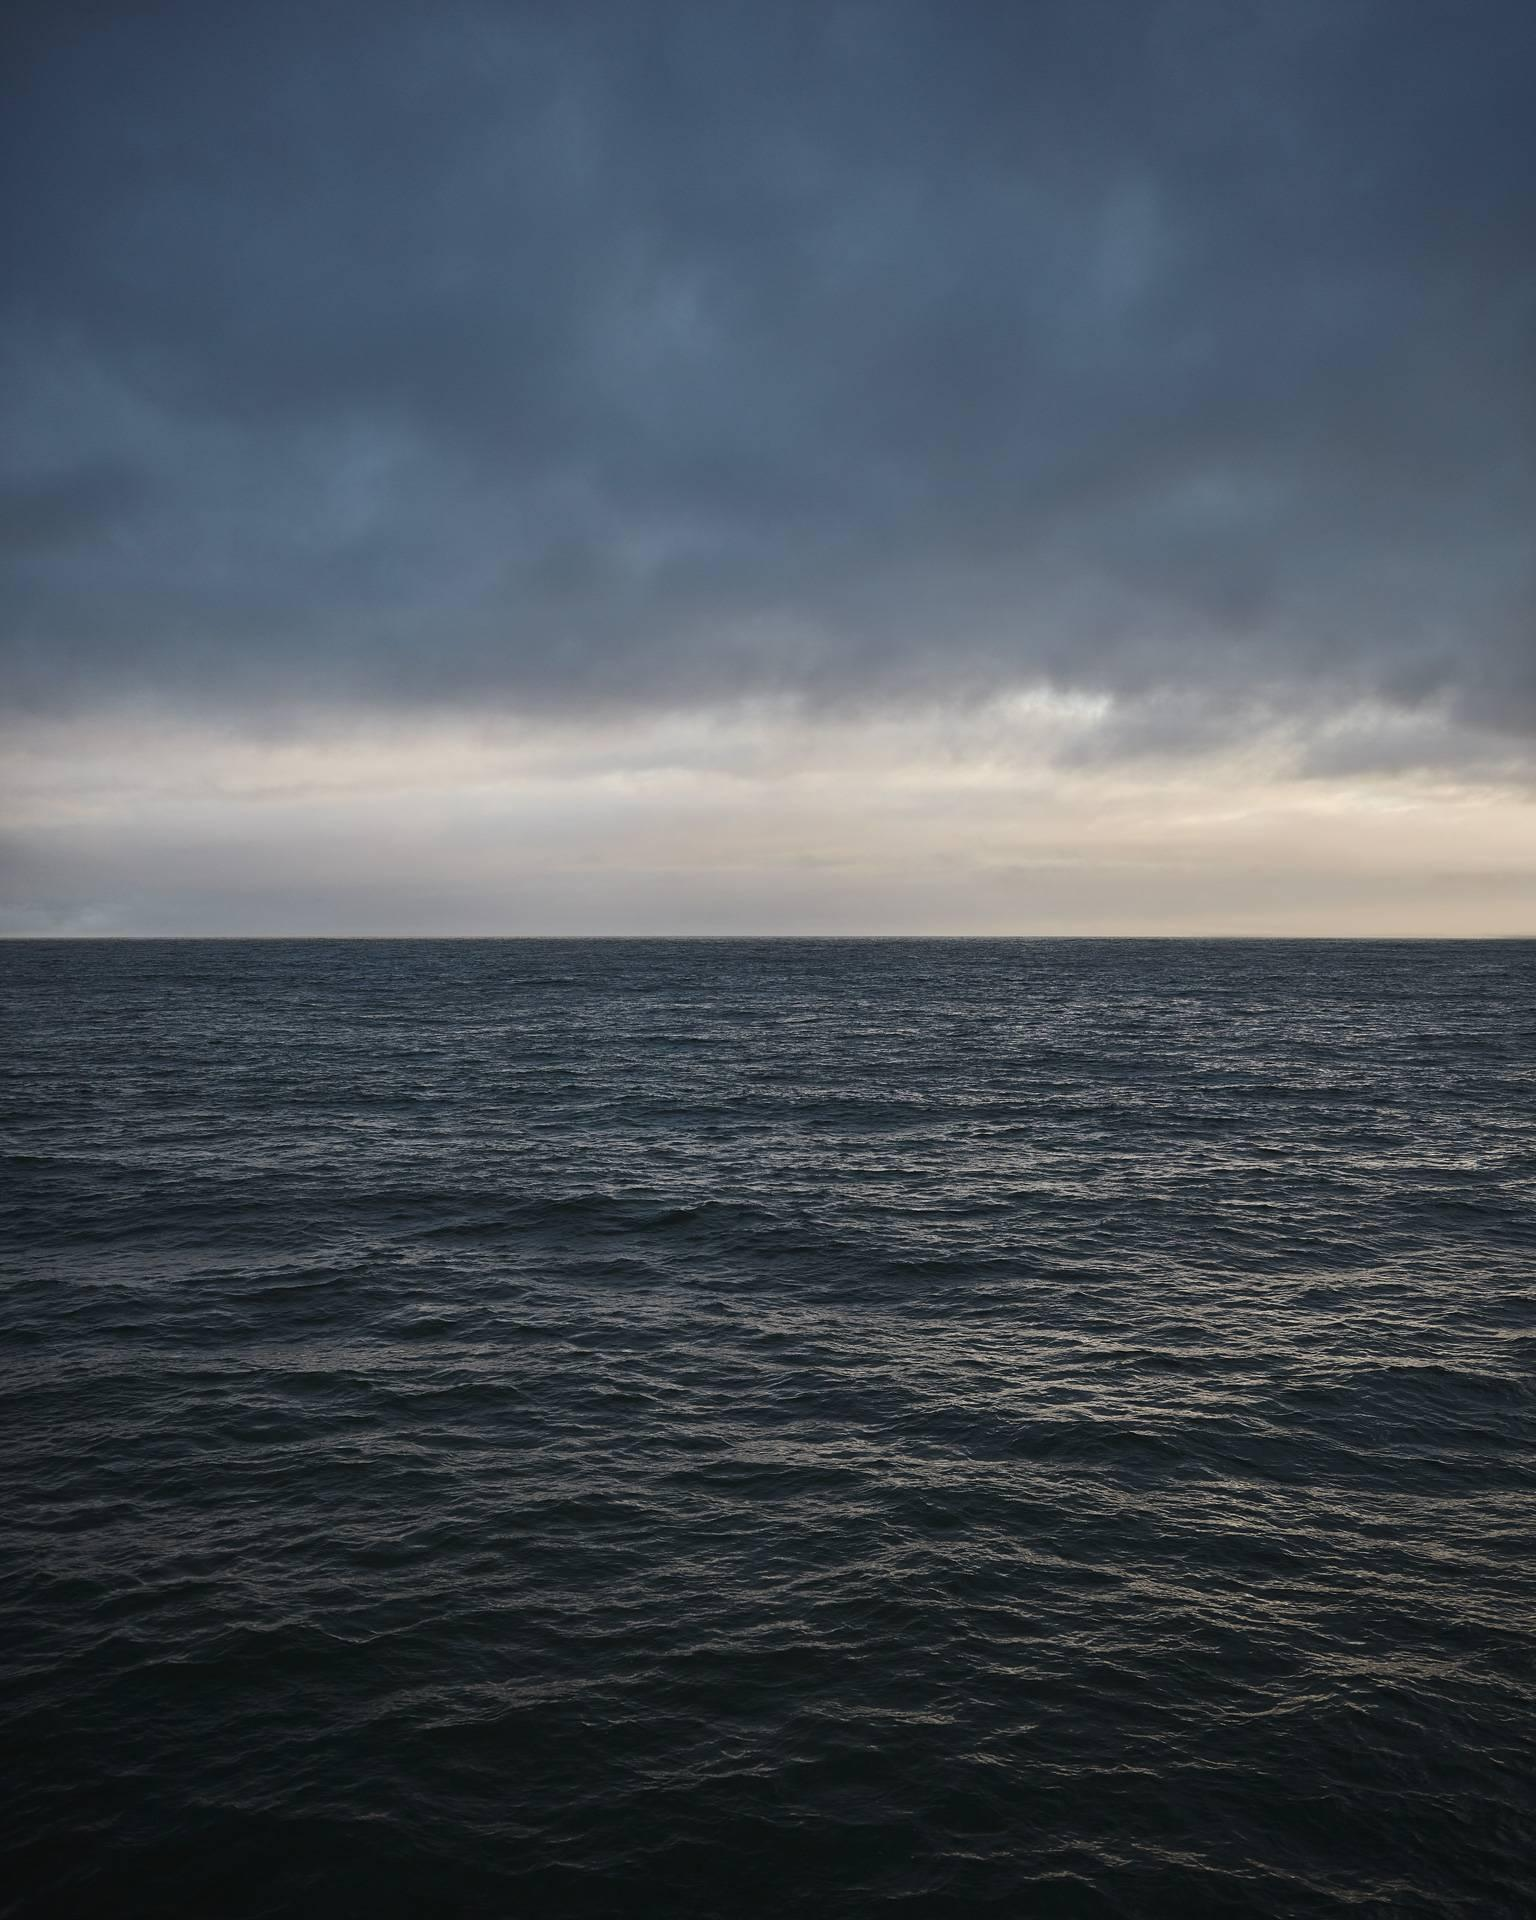 Seascape IV (framed) - large format abstract photograph of water clouds horizon